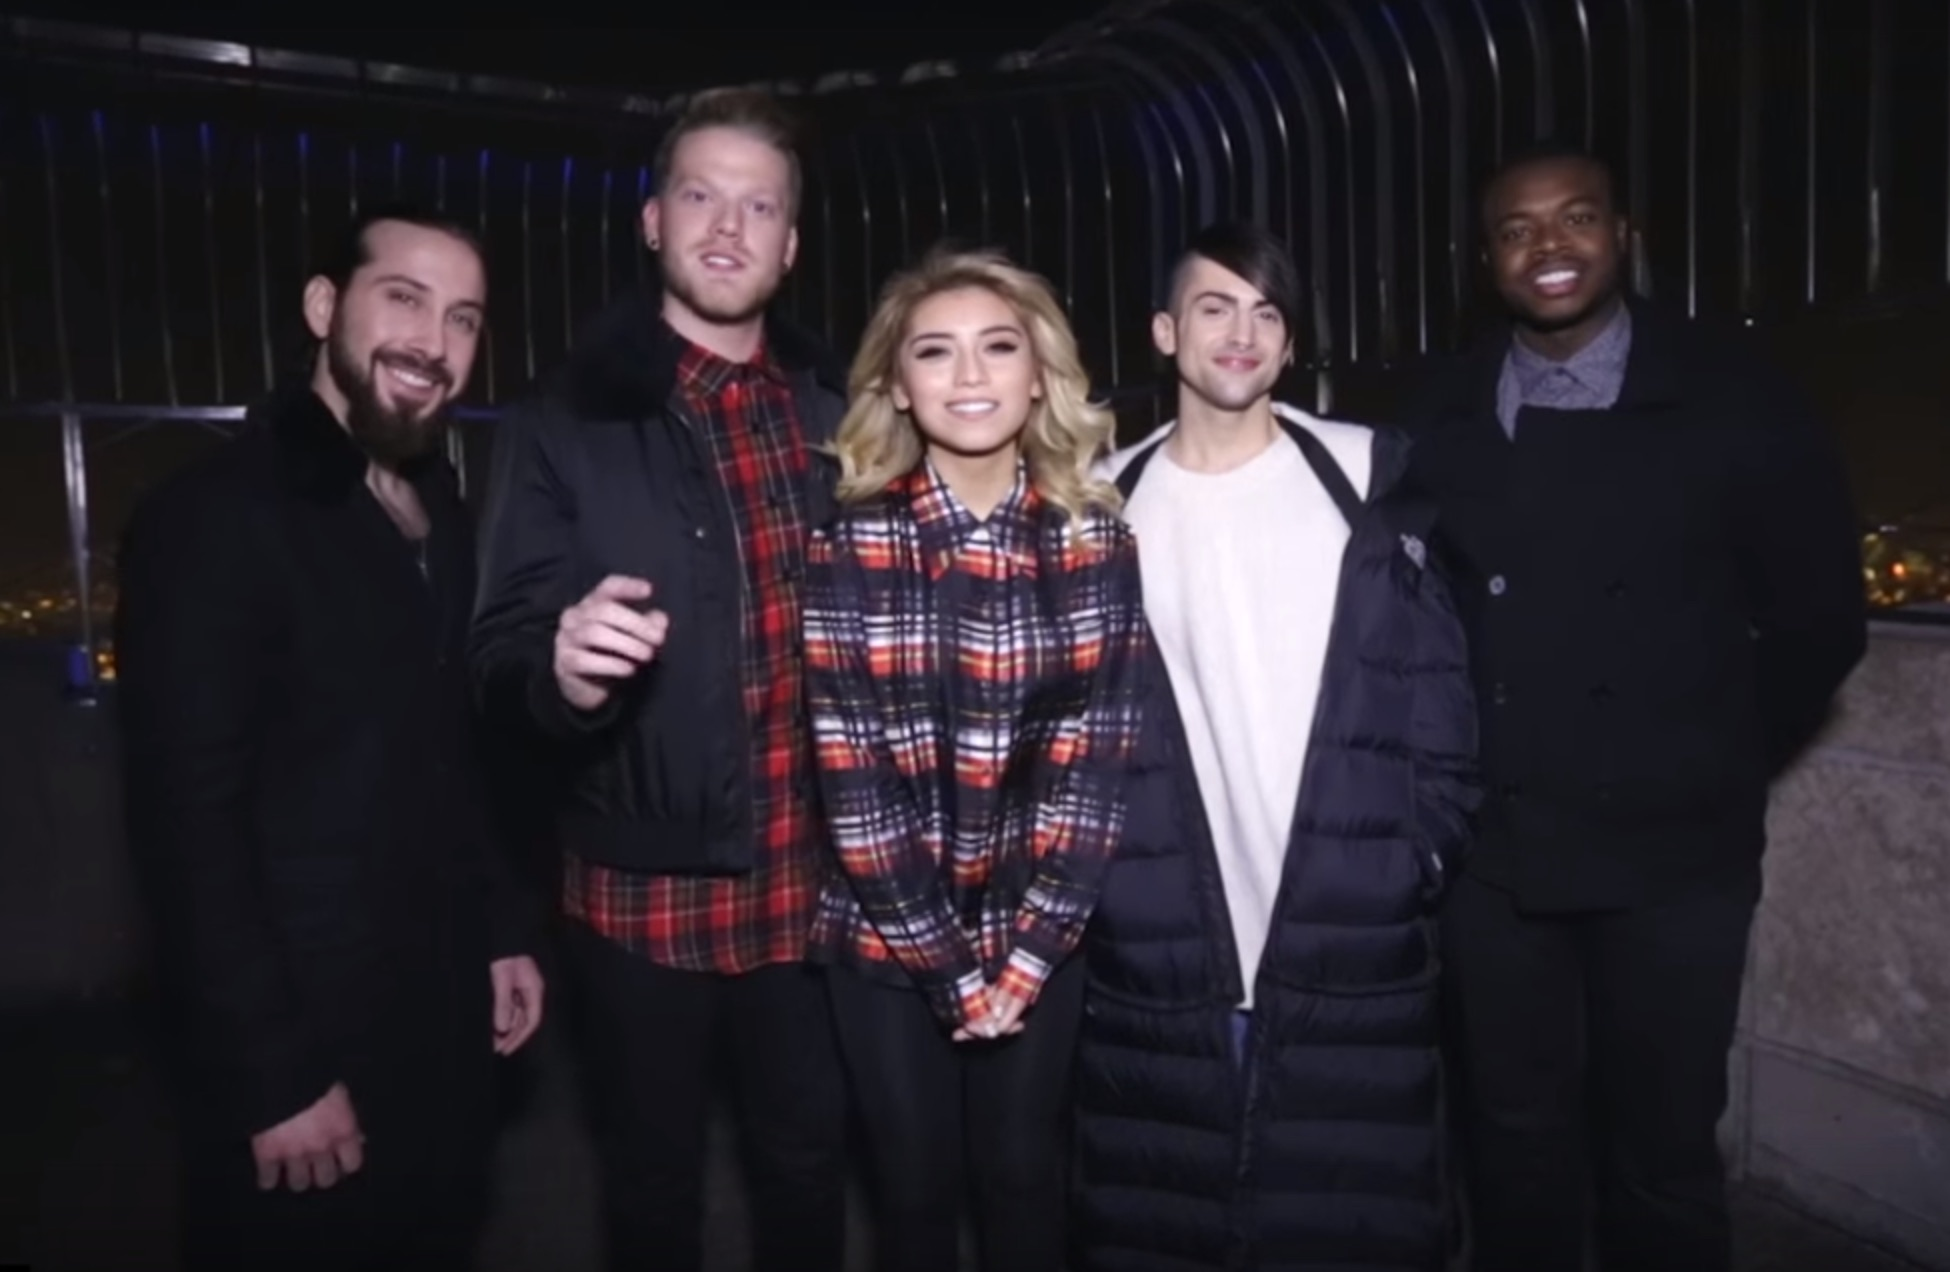 Watch Pentatonix light up New York with their rendition of 'Dance of The Sugarplum Fairy'